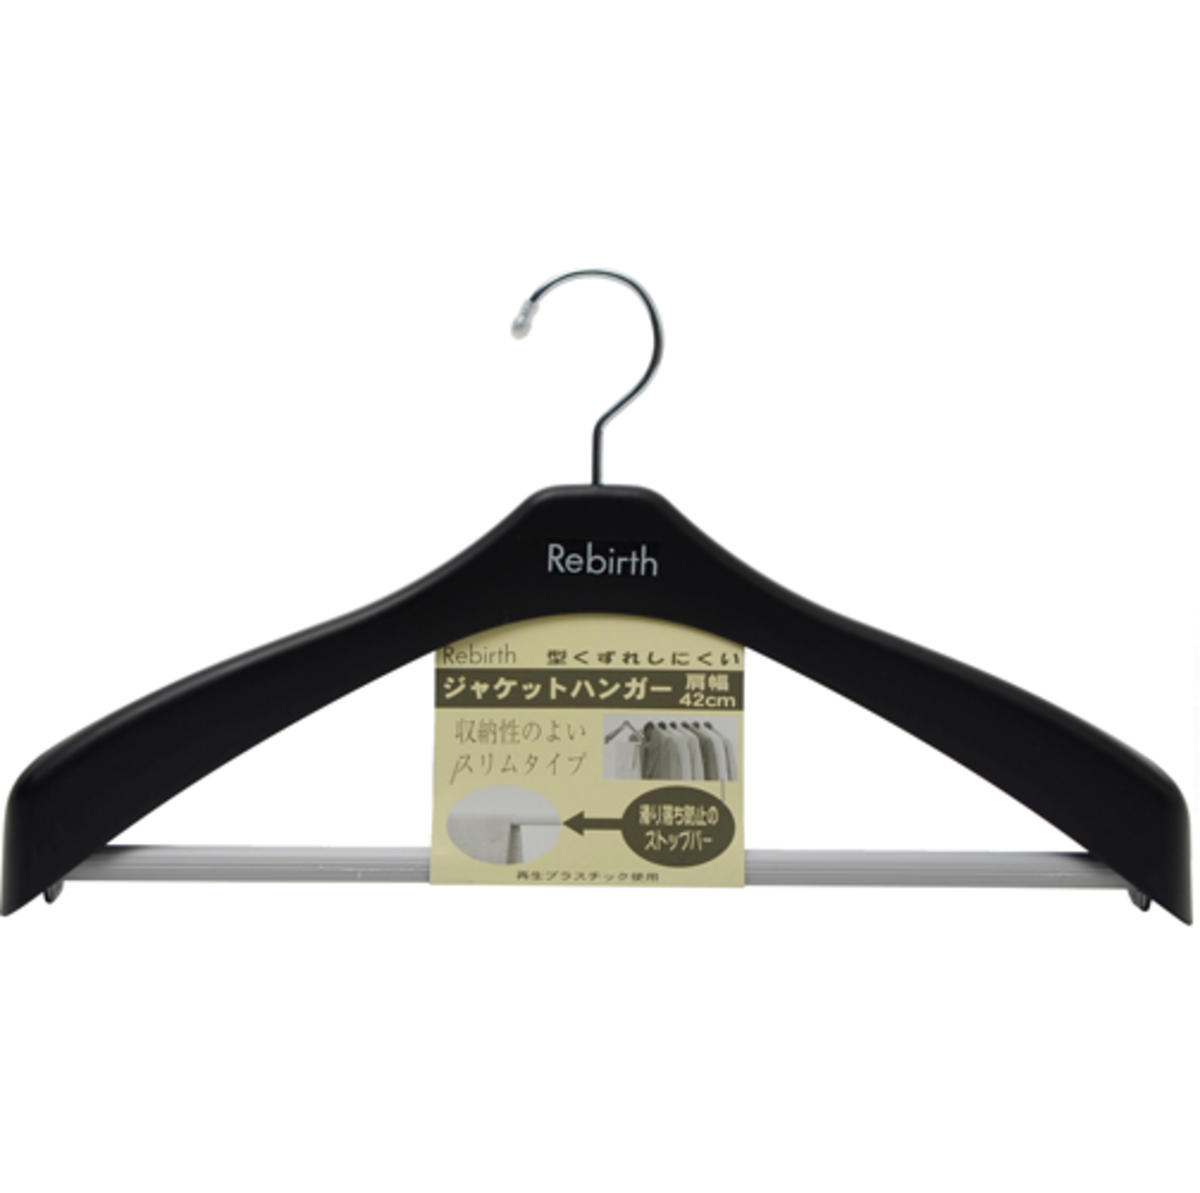 Rebirth Coat Hanger w/Non Slip Bar 42 X 2pcs (SJ-056189)